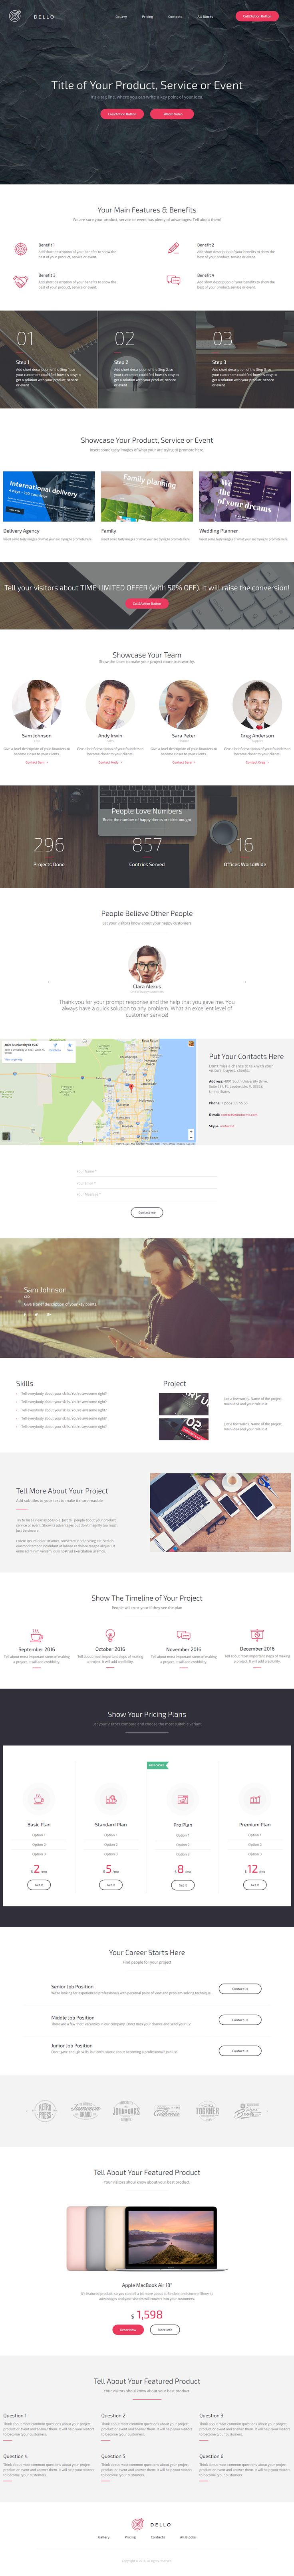 16 best insp / web / landing pages images on Pinterest | Page ...